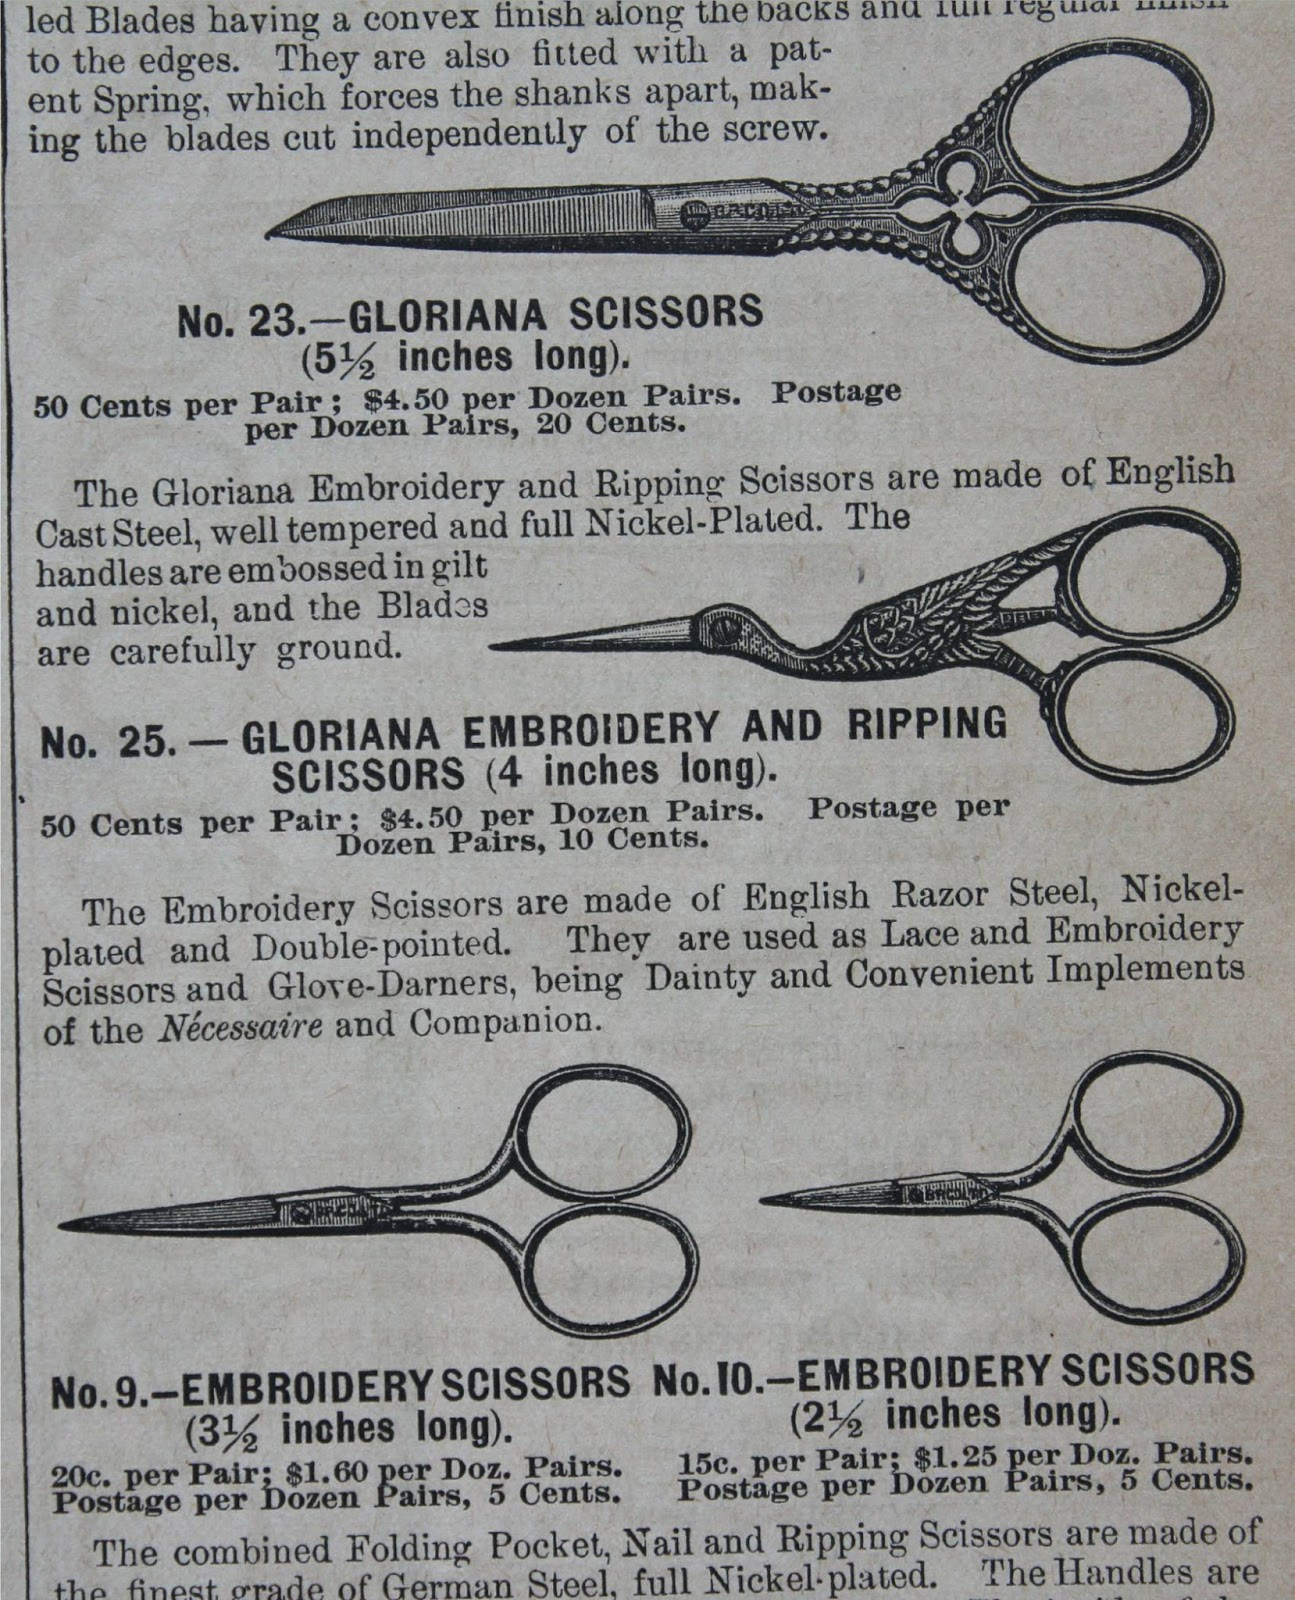 An advertisement from an old magazine from the late 1800's.